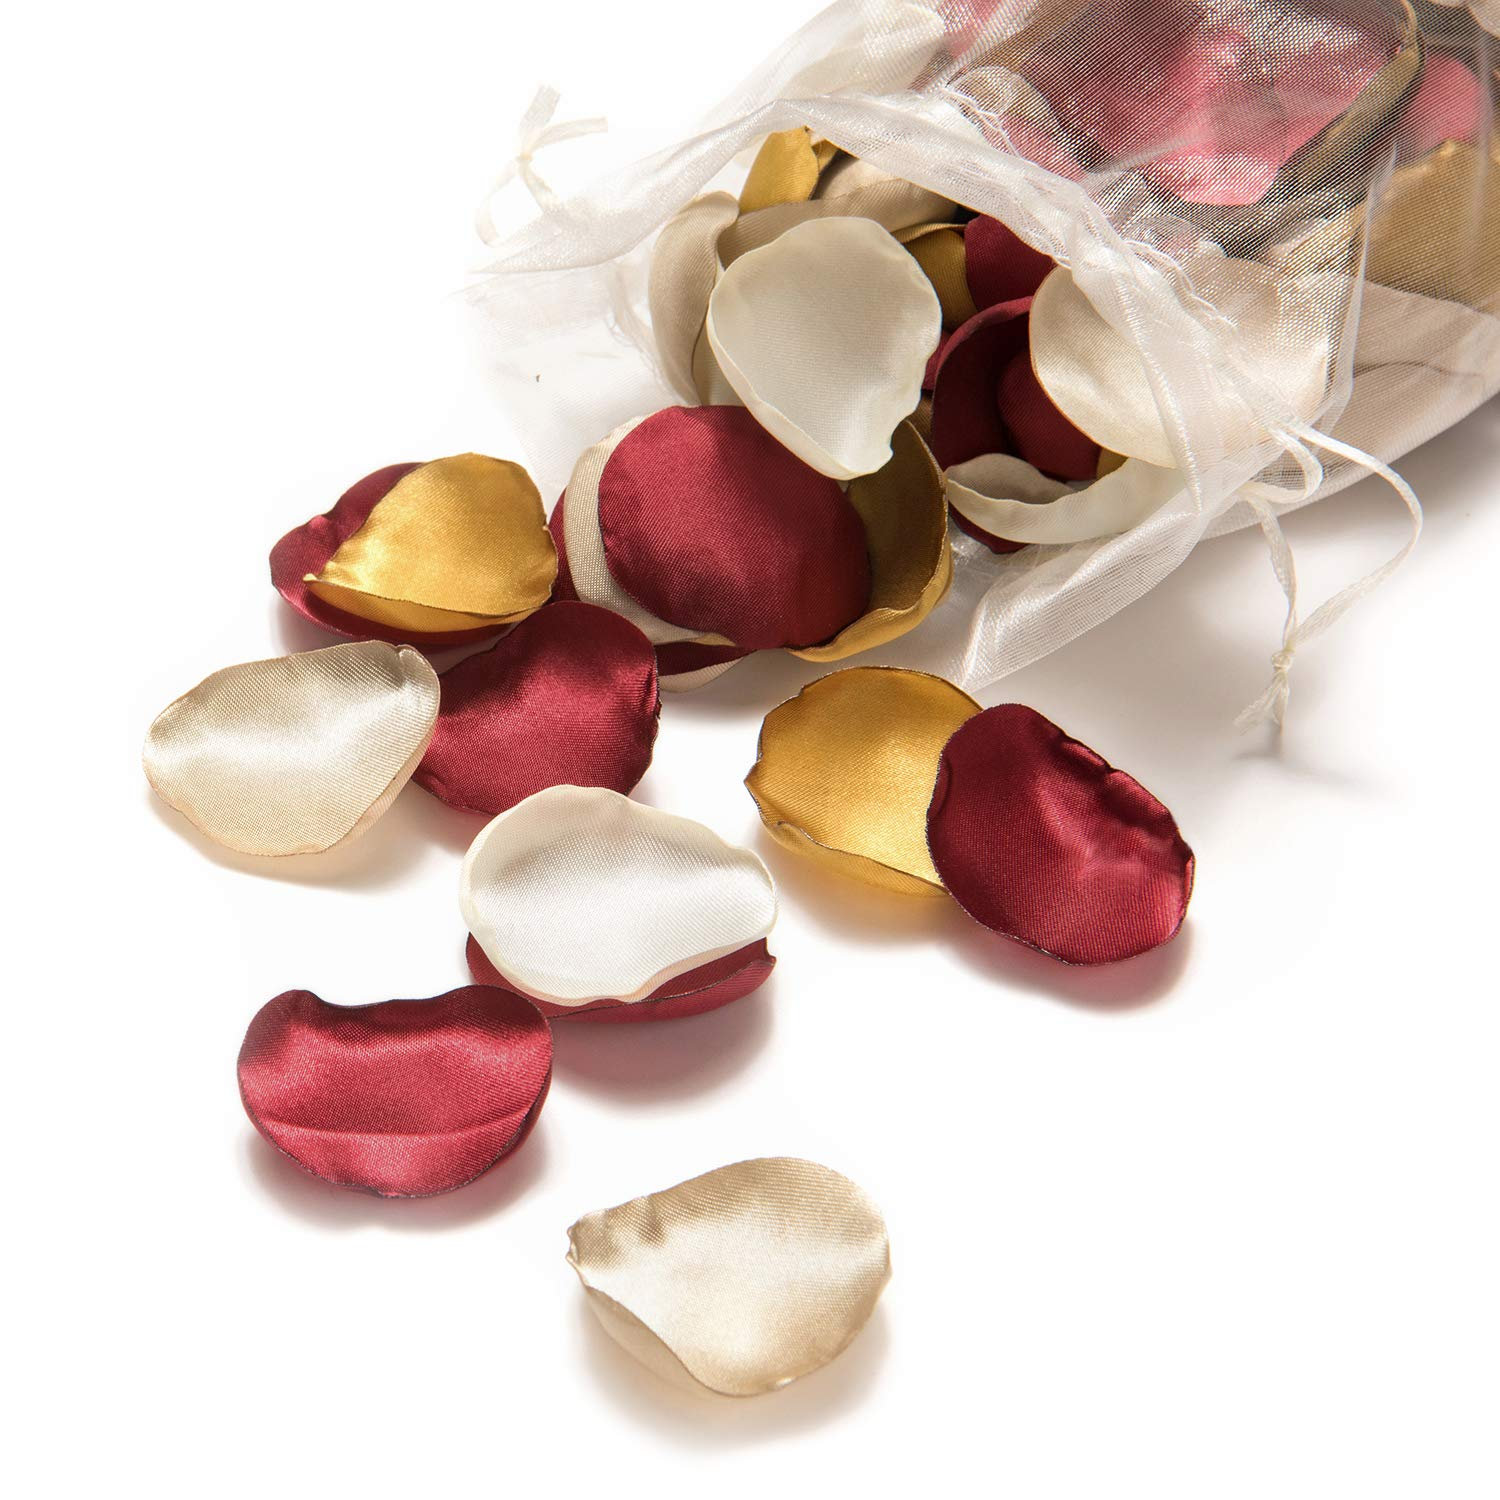 Ling's moment Silk Rose Petals 200PCS Burgundy Gold Flower Petals for Wedding Flower Girl Basket Table Centerpieces Cake Table Sweetheart Table Aisle Scatter Petals